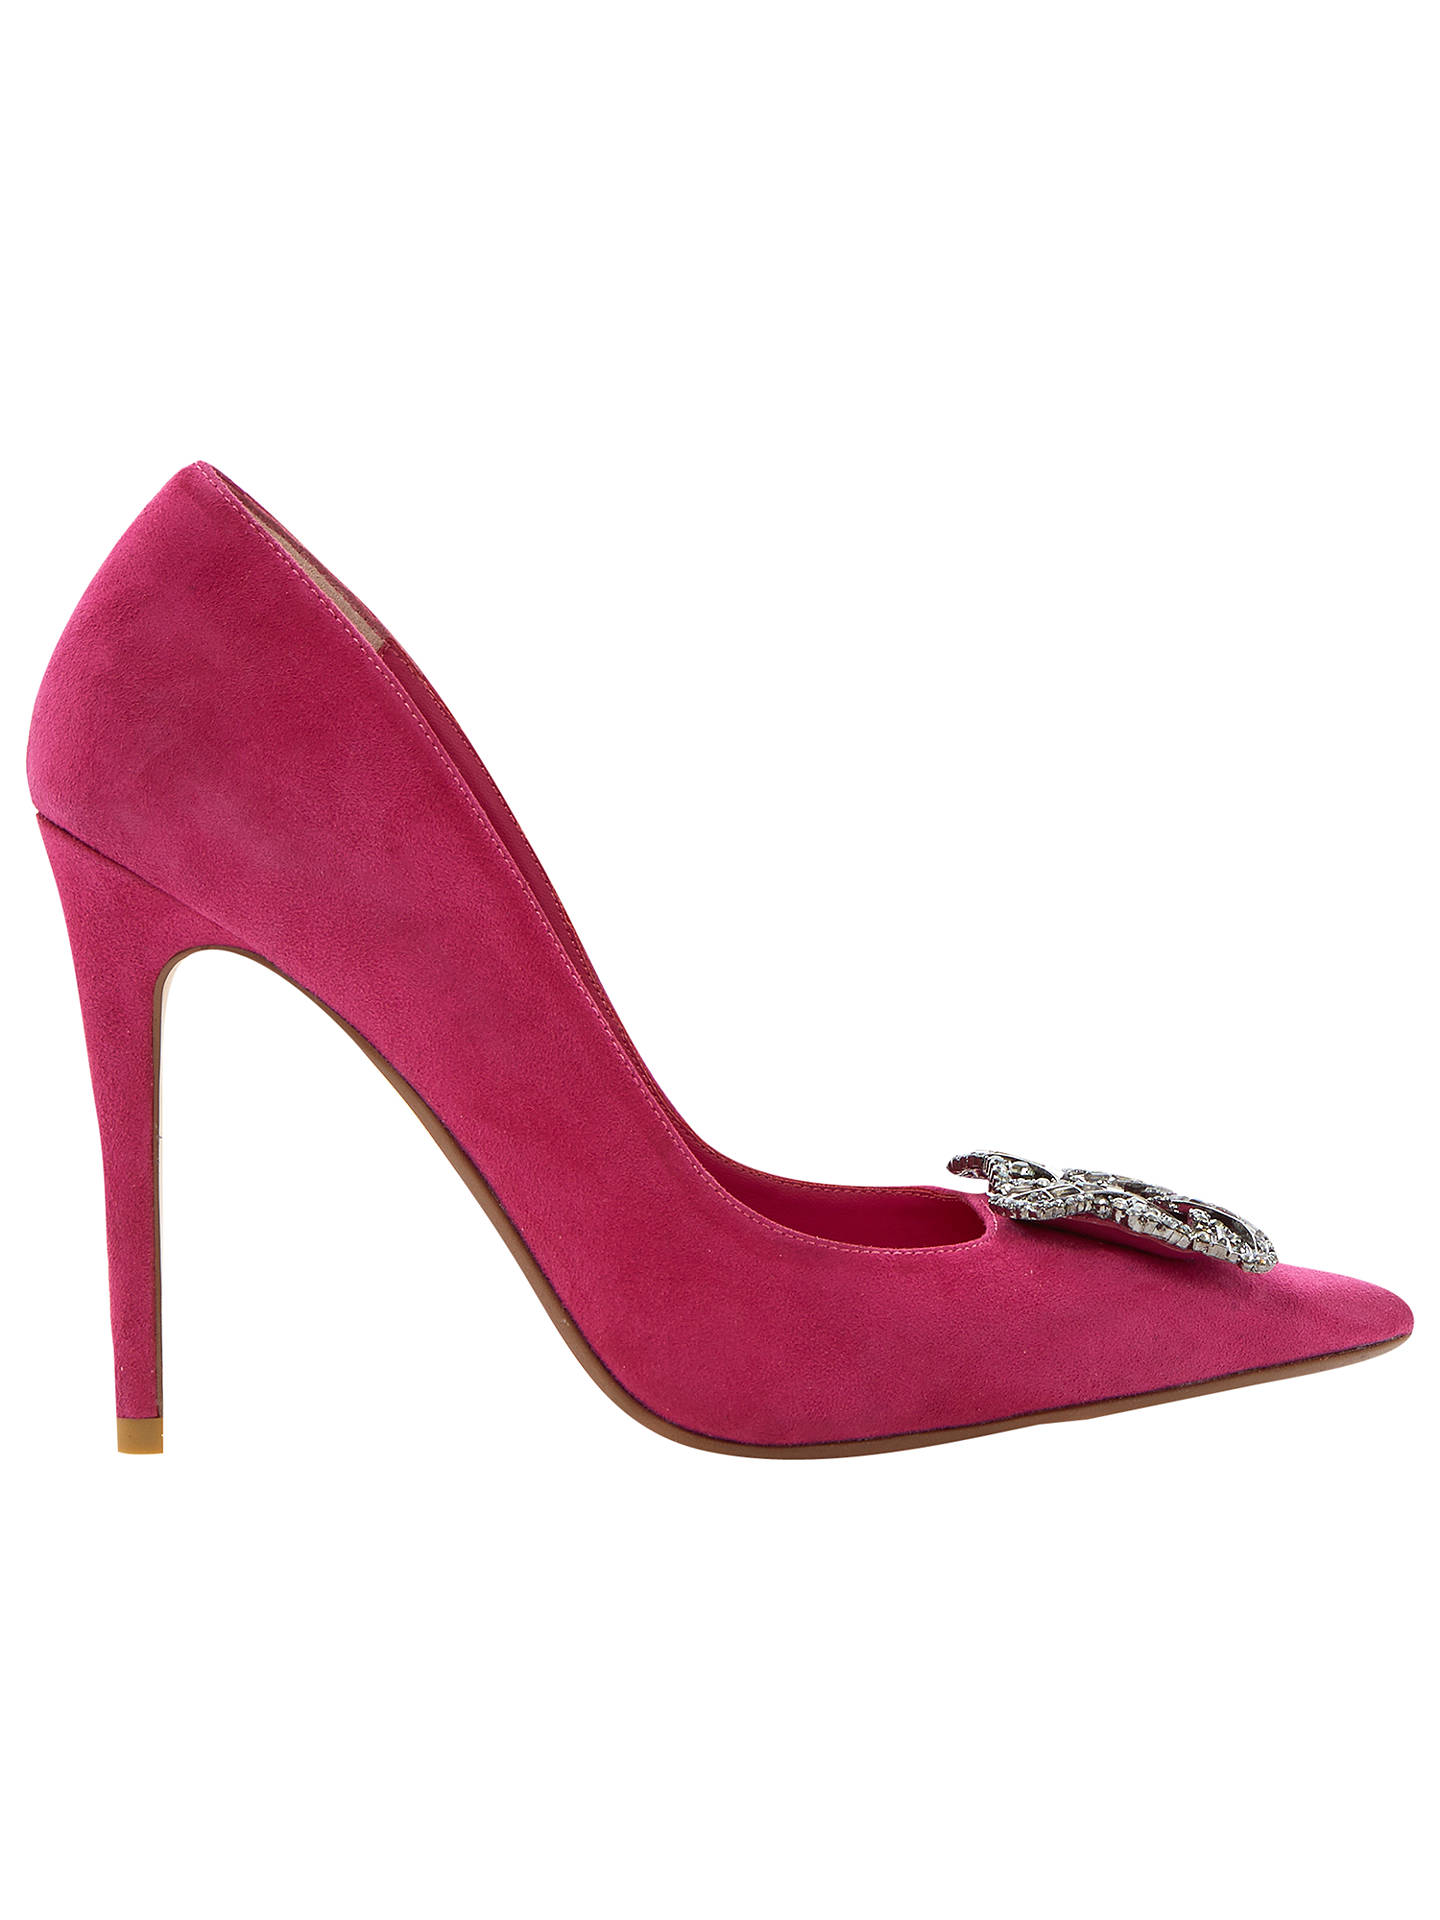 BuyDune Breanna Jewelled Brooch Court Shoes, Pink Suede, 3 Online at johnlewis.com